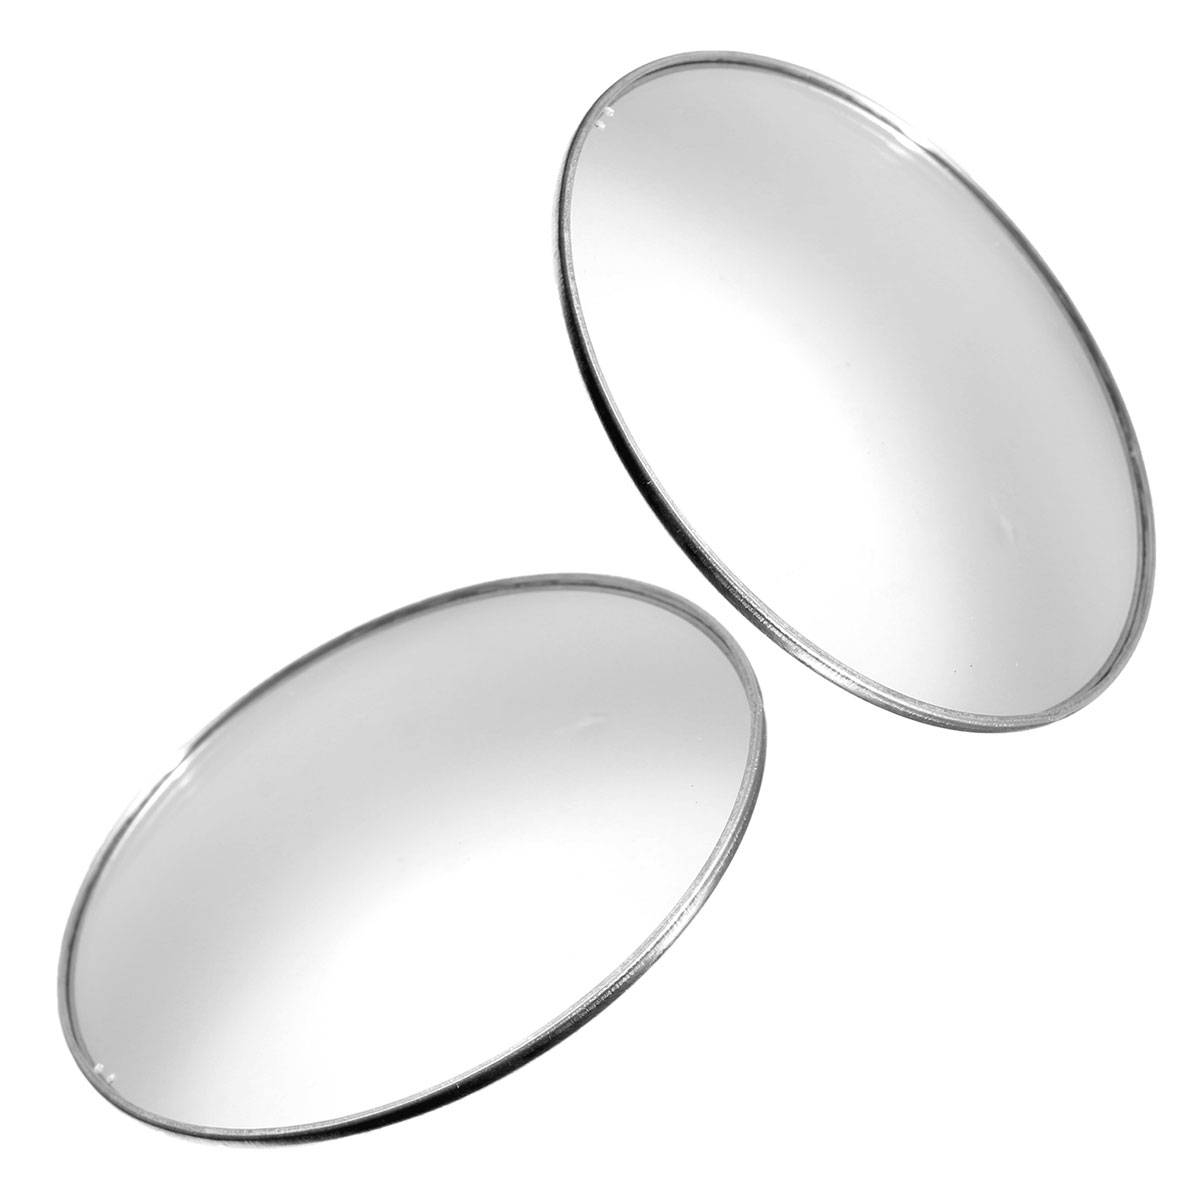 3 Convex Mirror Reviews - Online Shopping 3 Convex Mirror Reviews for Small Round Convex Mirrors (Image 3 of 25)